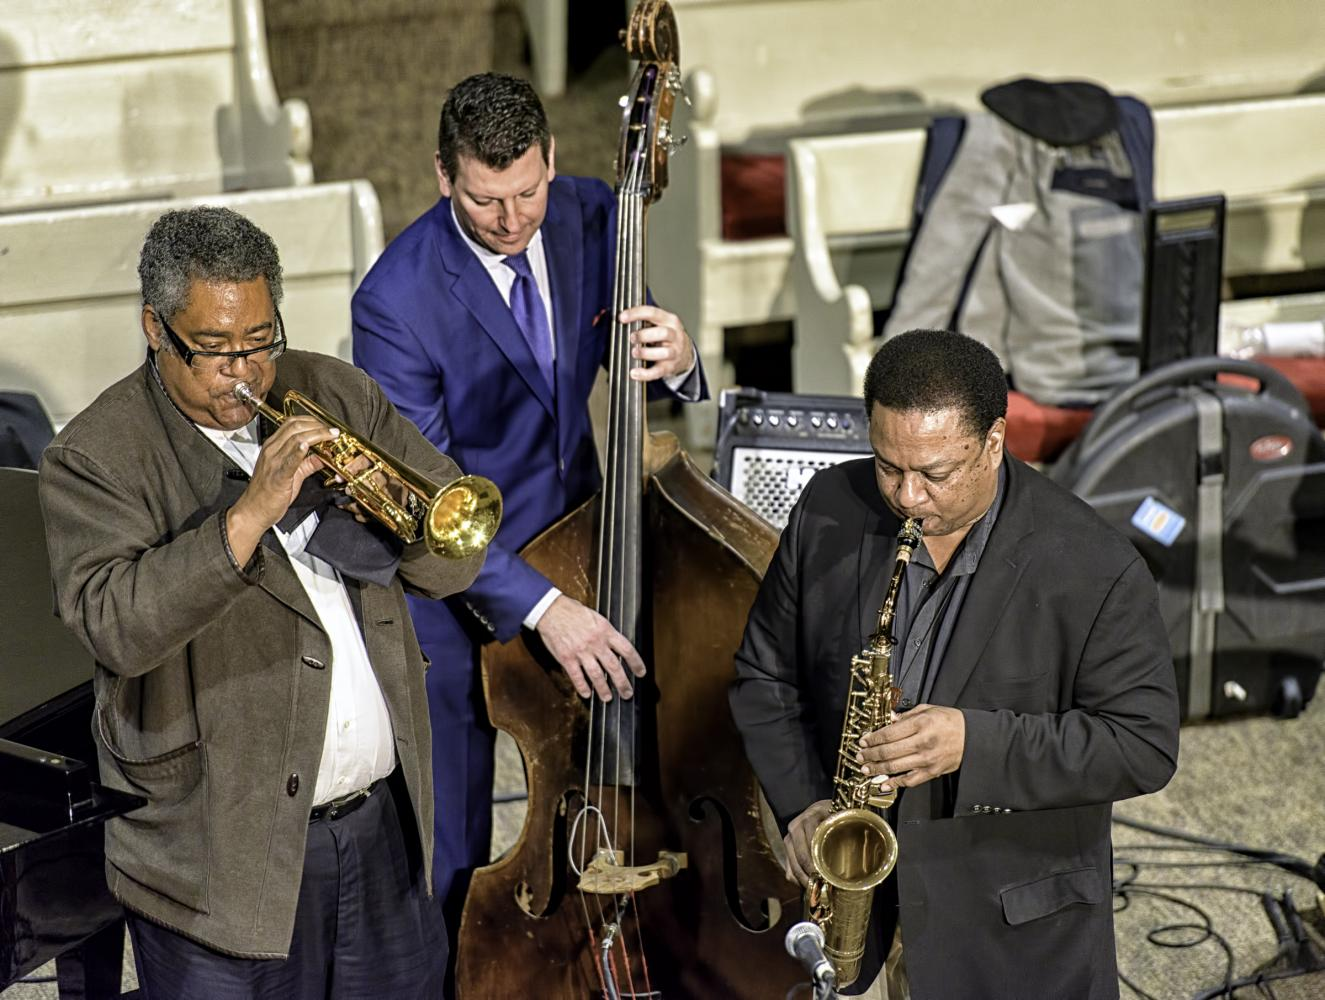 Jon Faddis, John Webber and Vincent Herring At The Jazz Legends For Disability Pride At The NYC Winter Jazzfest 2017